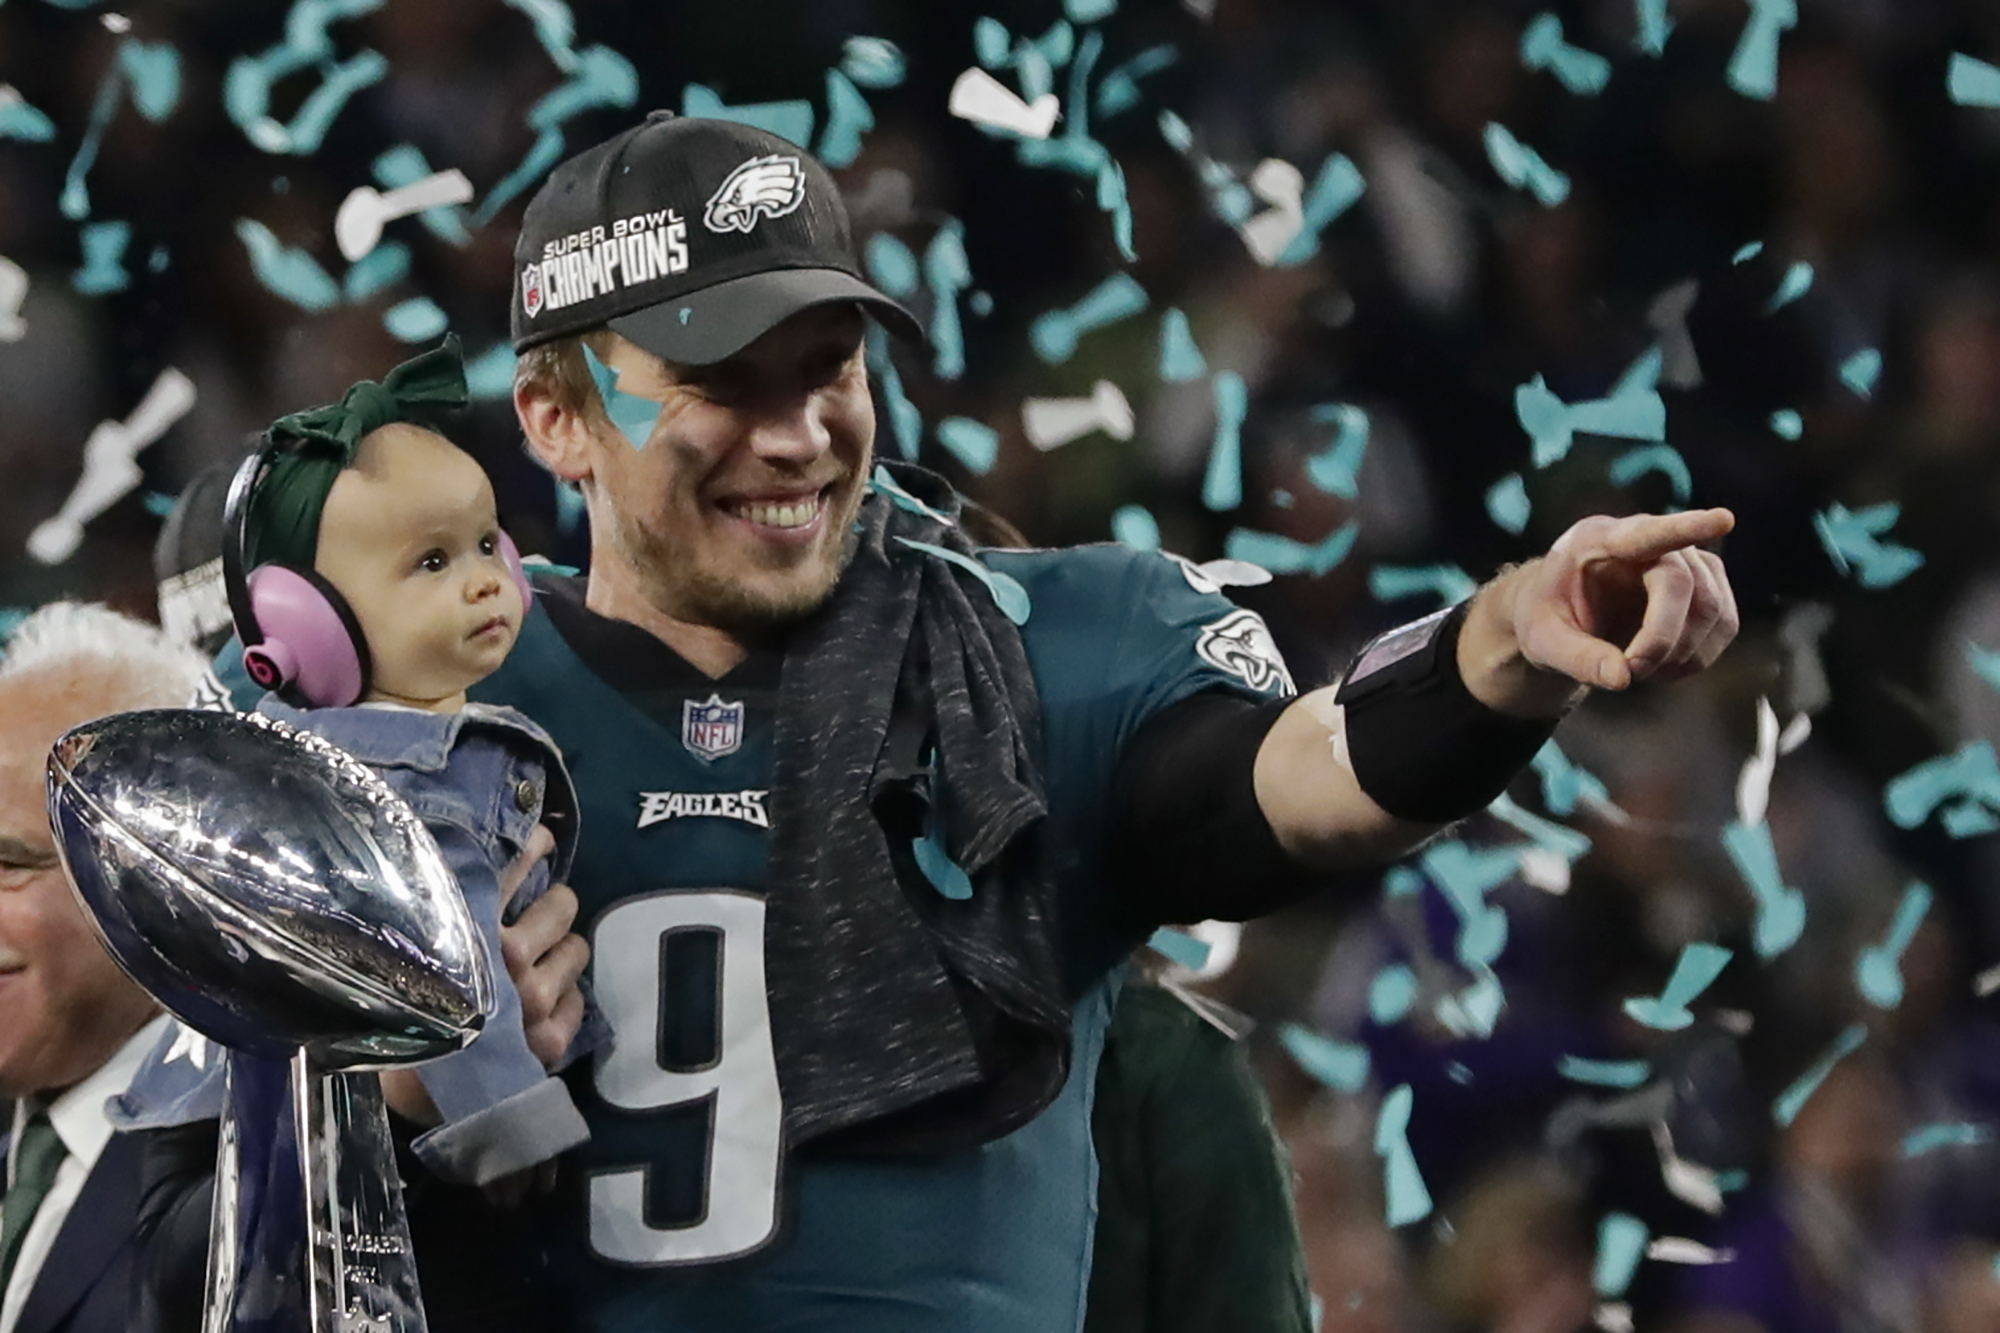 "<div class=""meta image-caption""><div class=""origin-logo origin-image ap""><span>AP</span></div><span class=""caption-text"">Philadelphia Eagles quarterback Nick Foles (9) holds his daughter, Lily James, after winning the NFL Super Bowl 52 football game. (AP Photo/Frank Franklin II)</span></div>"